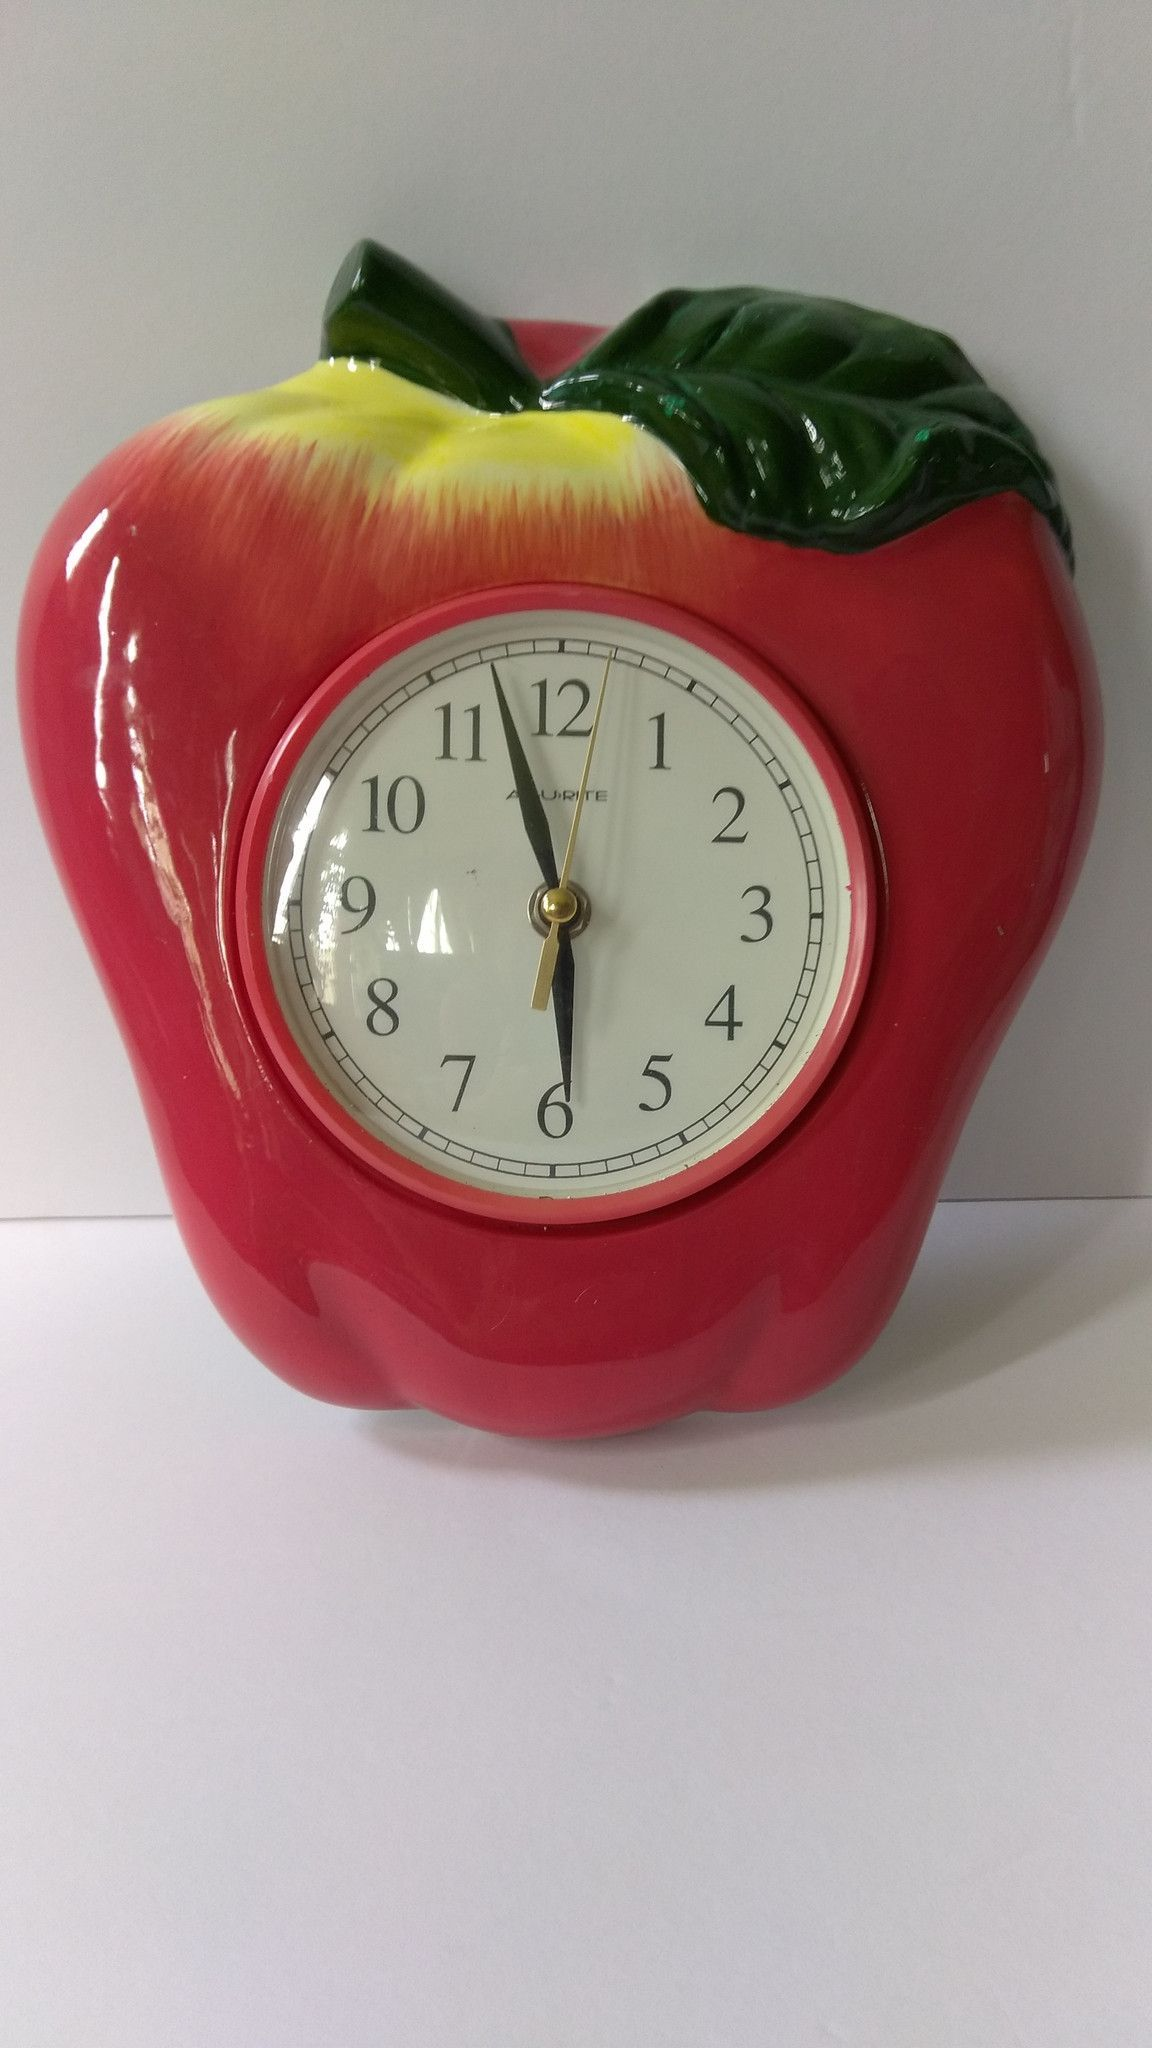 Acurite Apple Wall Clock Products Pinterest Wall Clocks